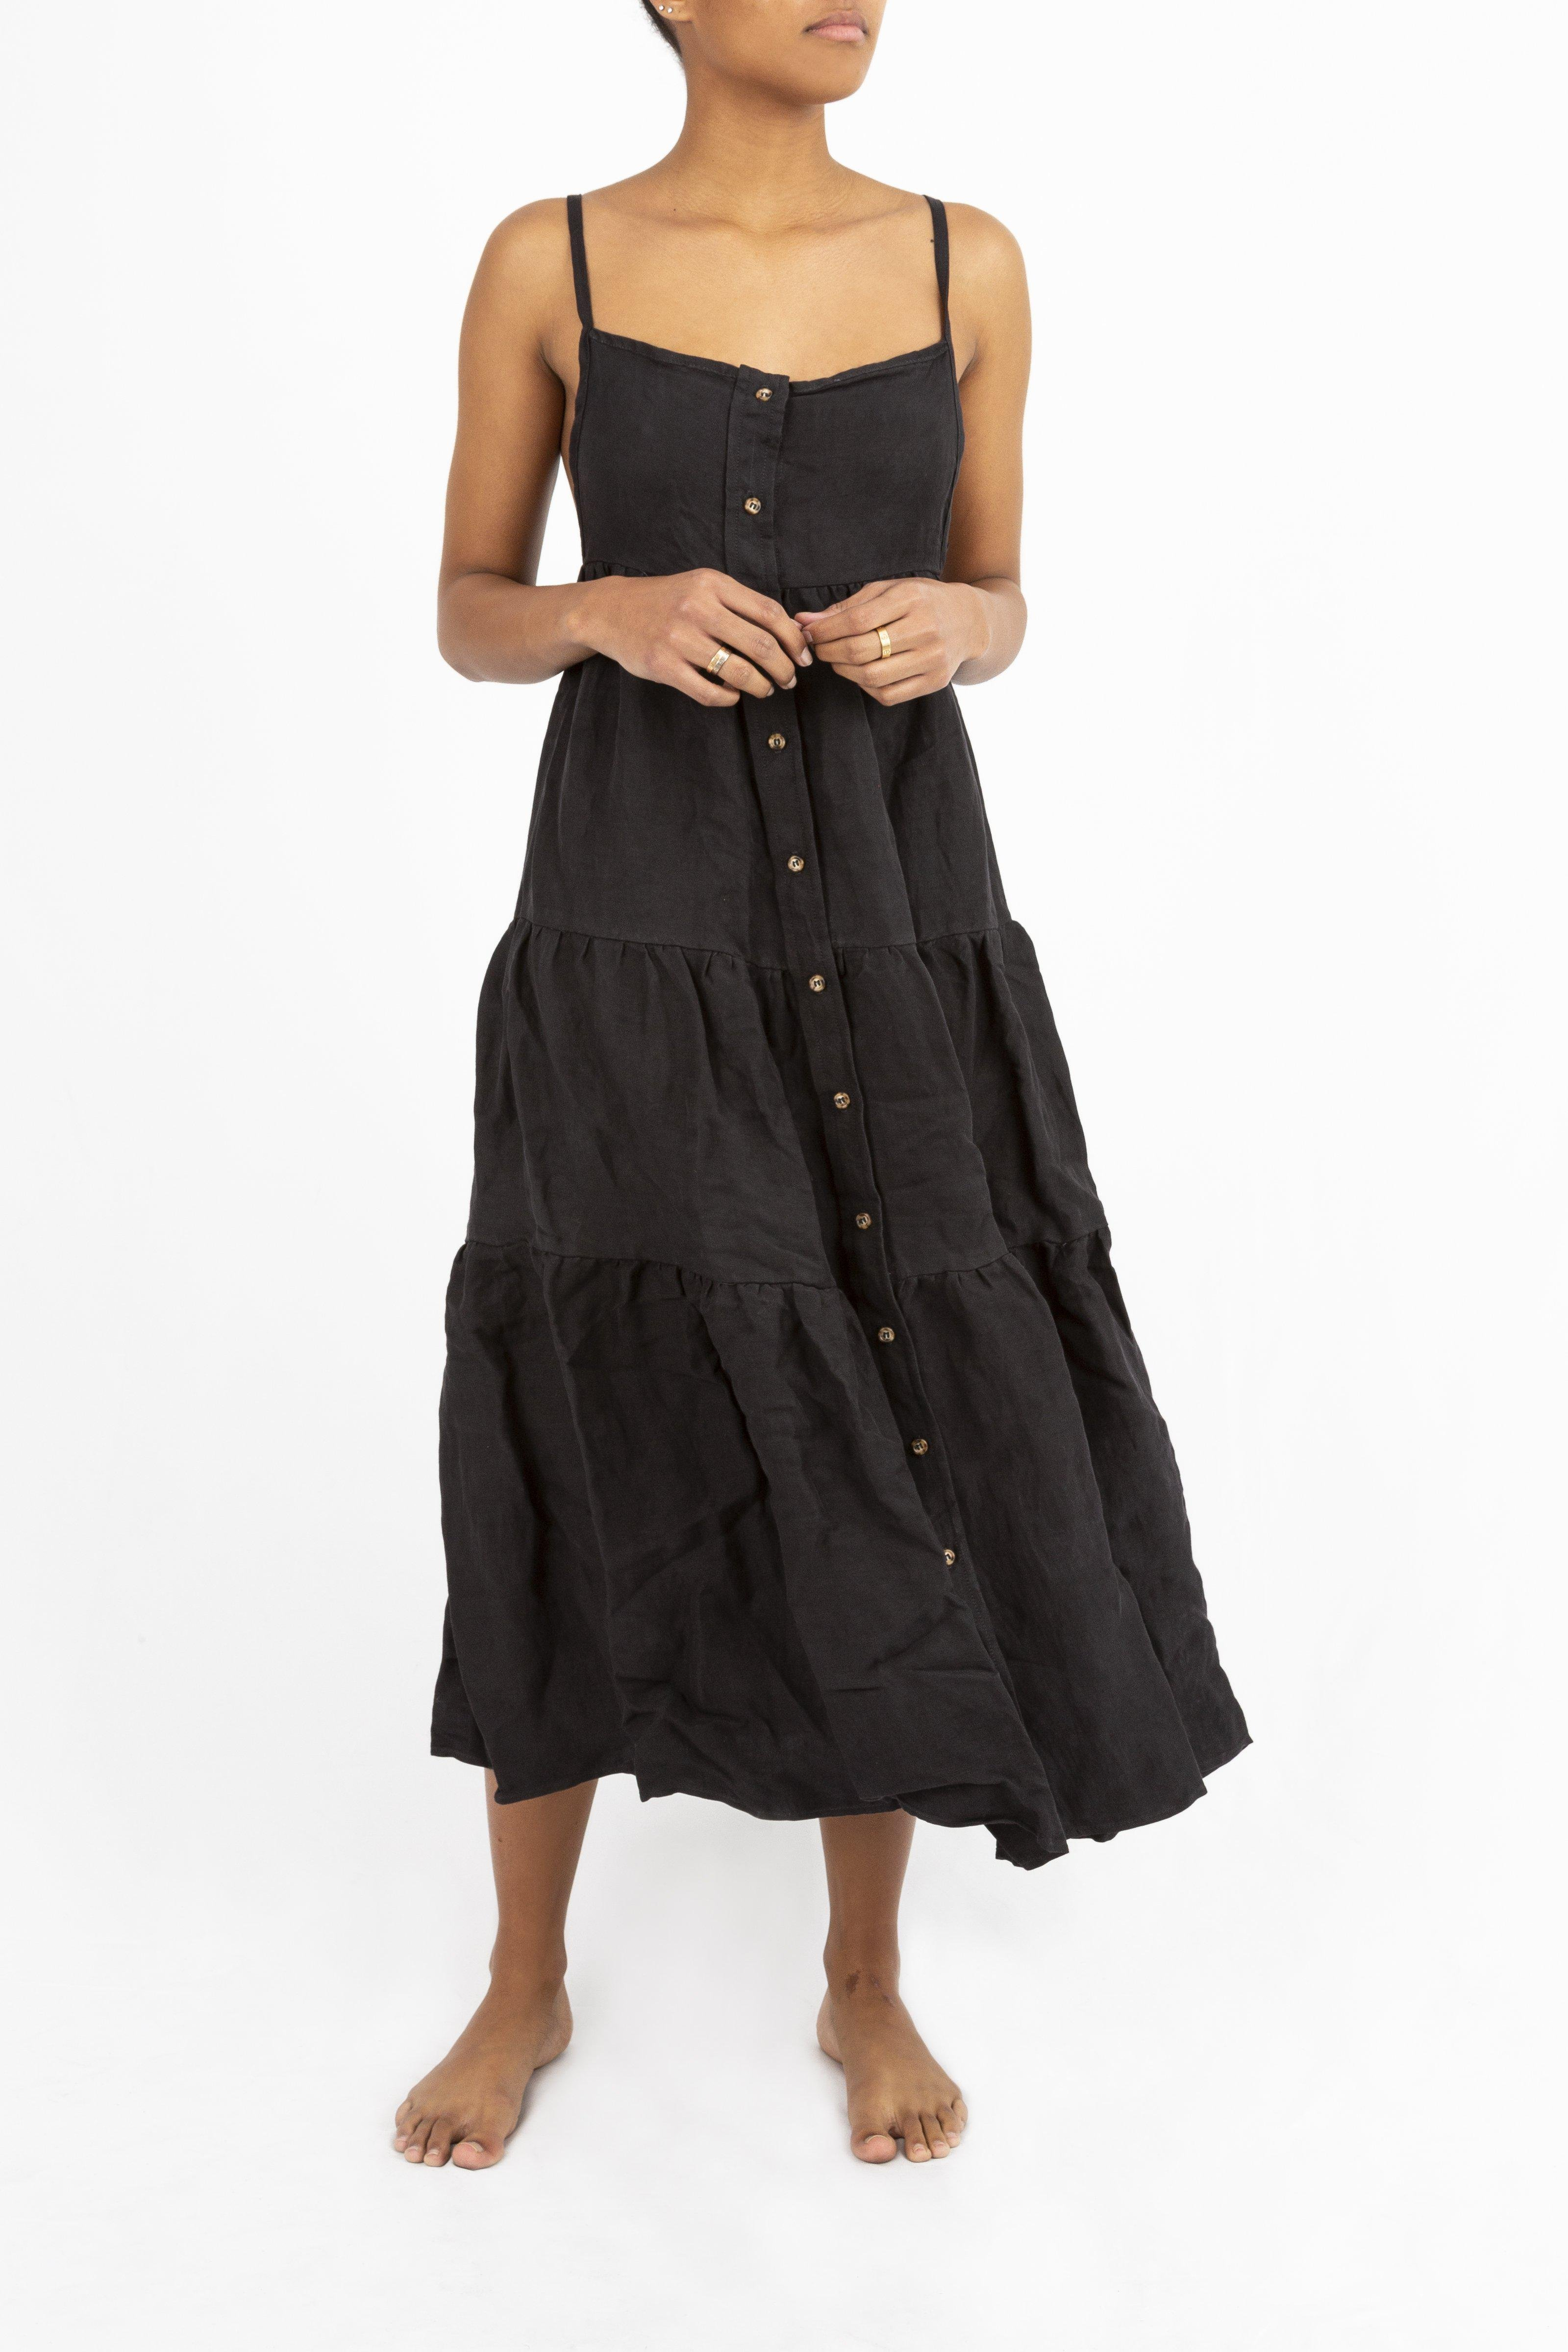 The Flounce Tiered Button-Down Midi Dress in Linen Cupro 2